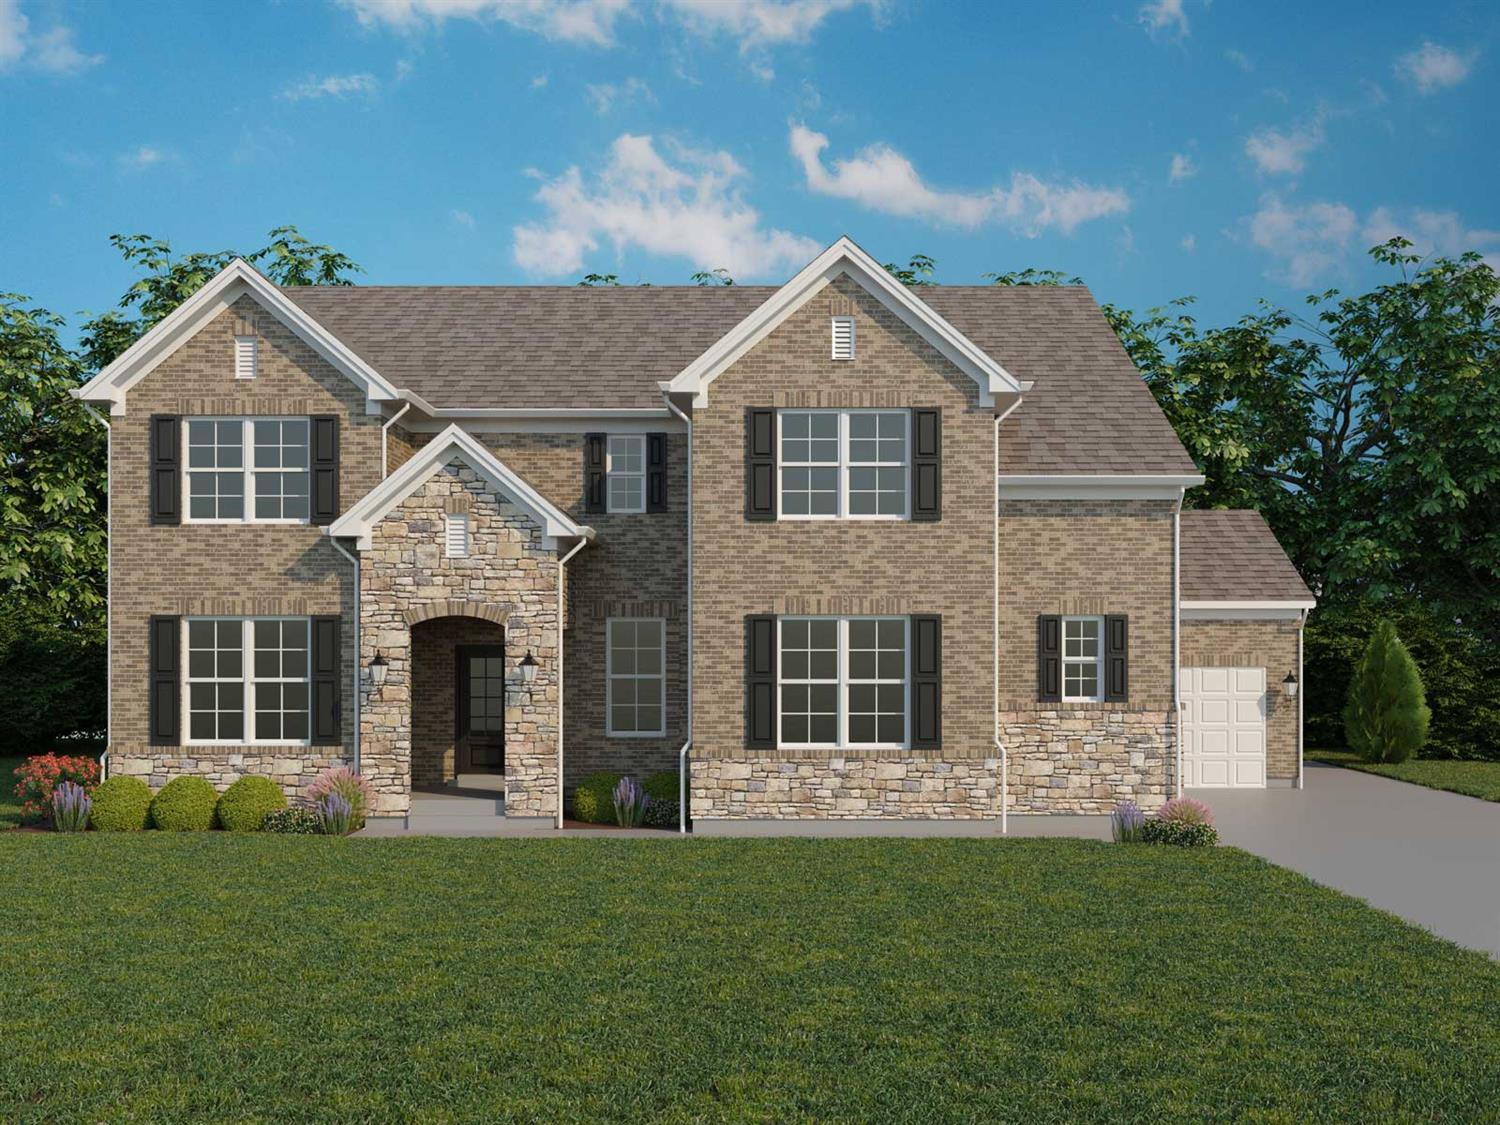 7148 Highland Bluff Drive, West Chester, OH 45069